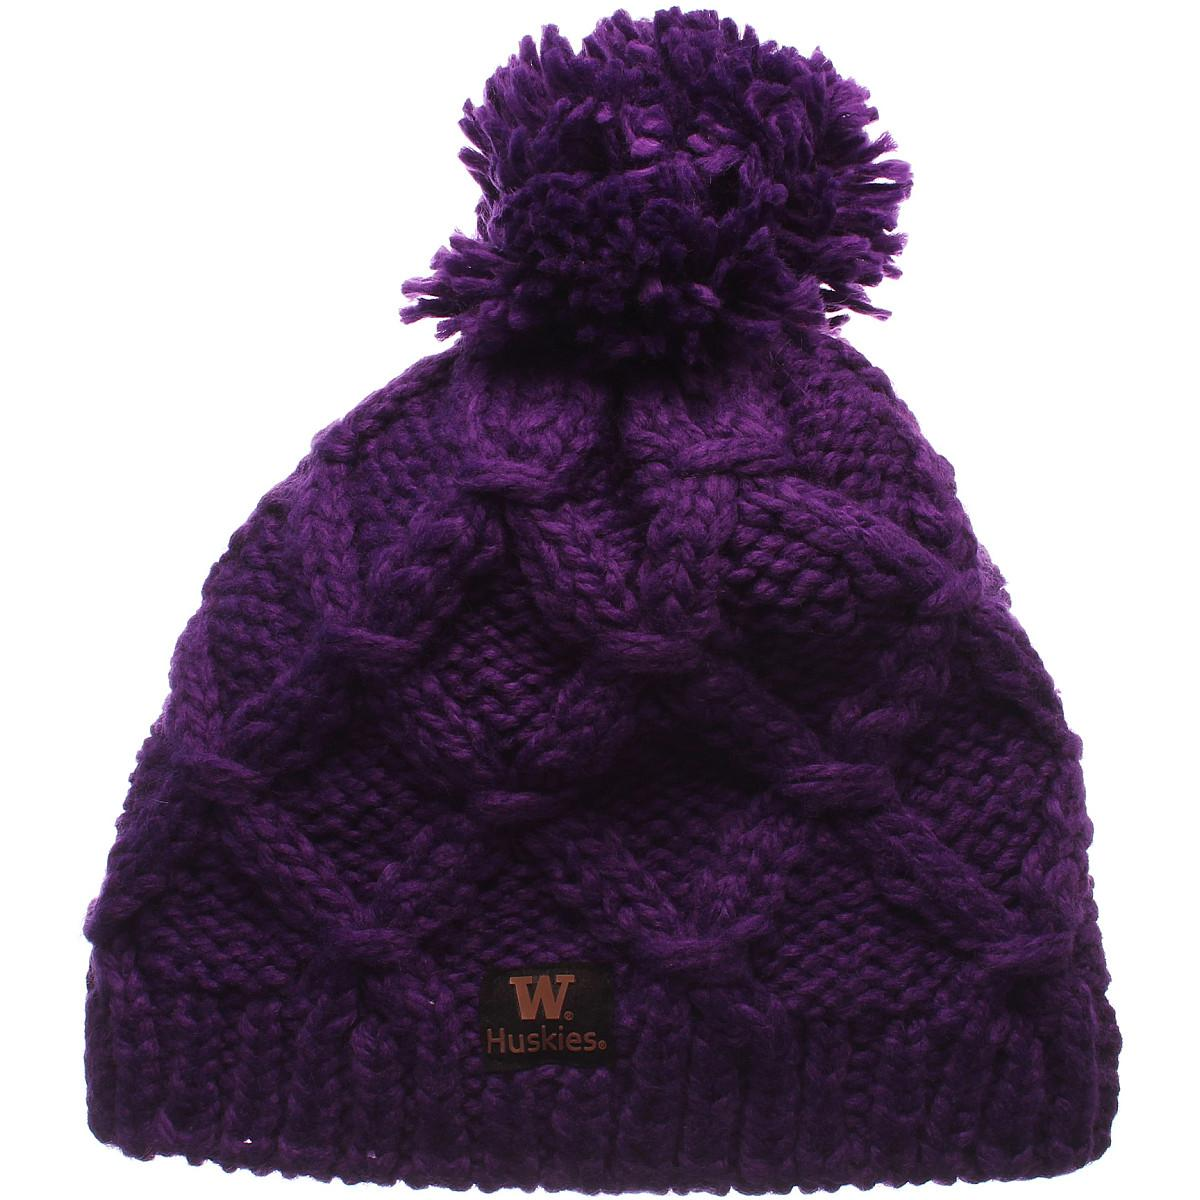 ac8b5c2514e ZEPHYR WOMEN S WASHINGTON HUSKIES MARILEN KNIT HAT PURPLE ADJ ...